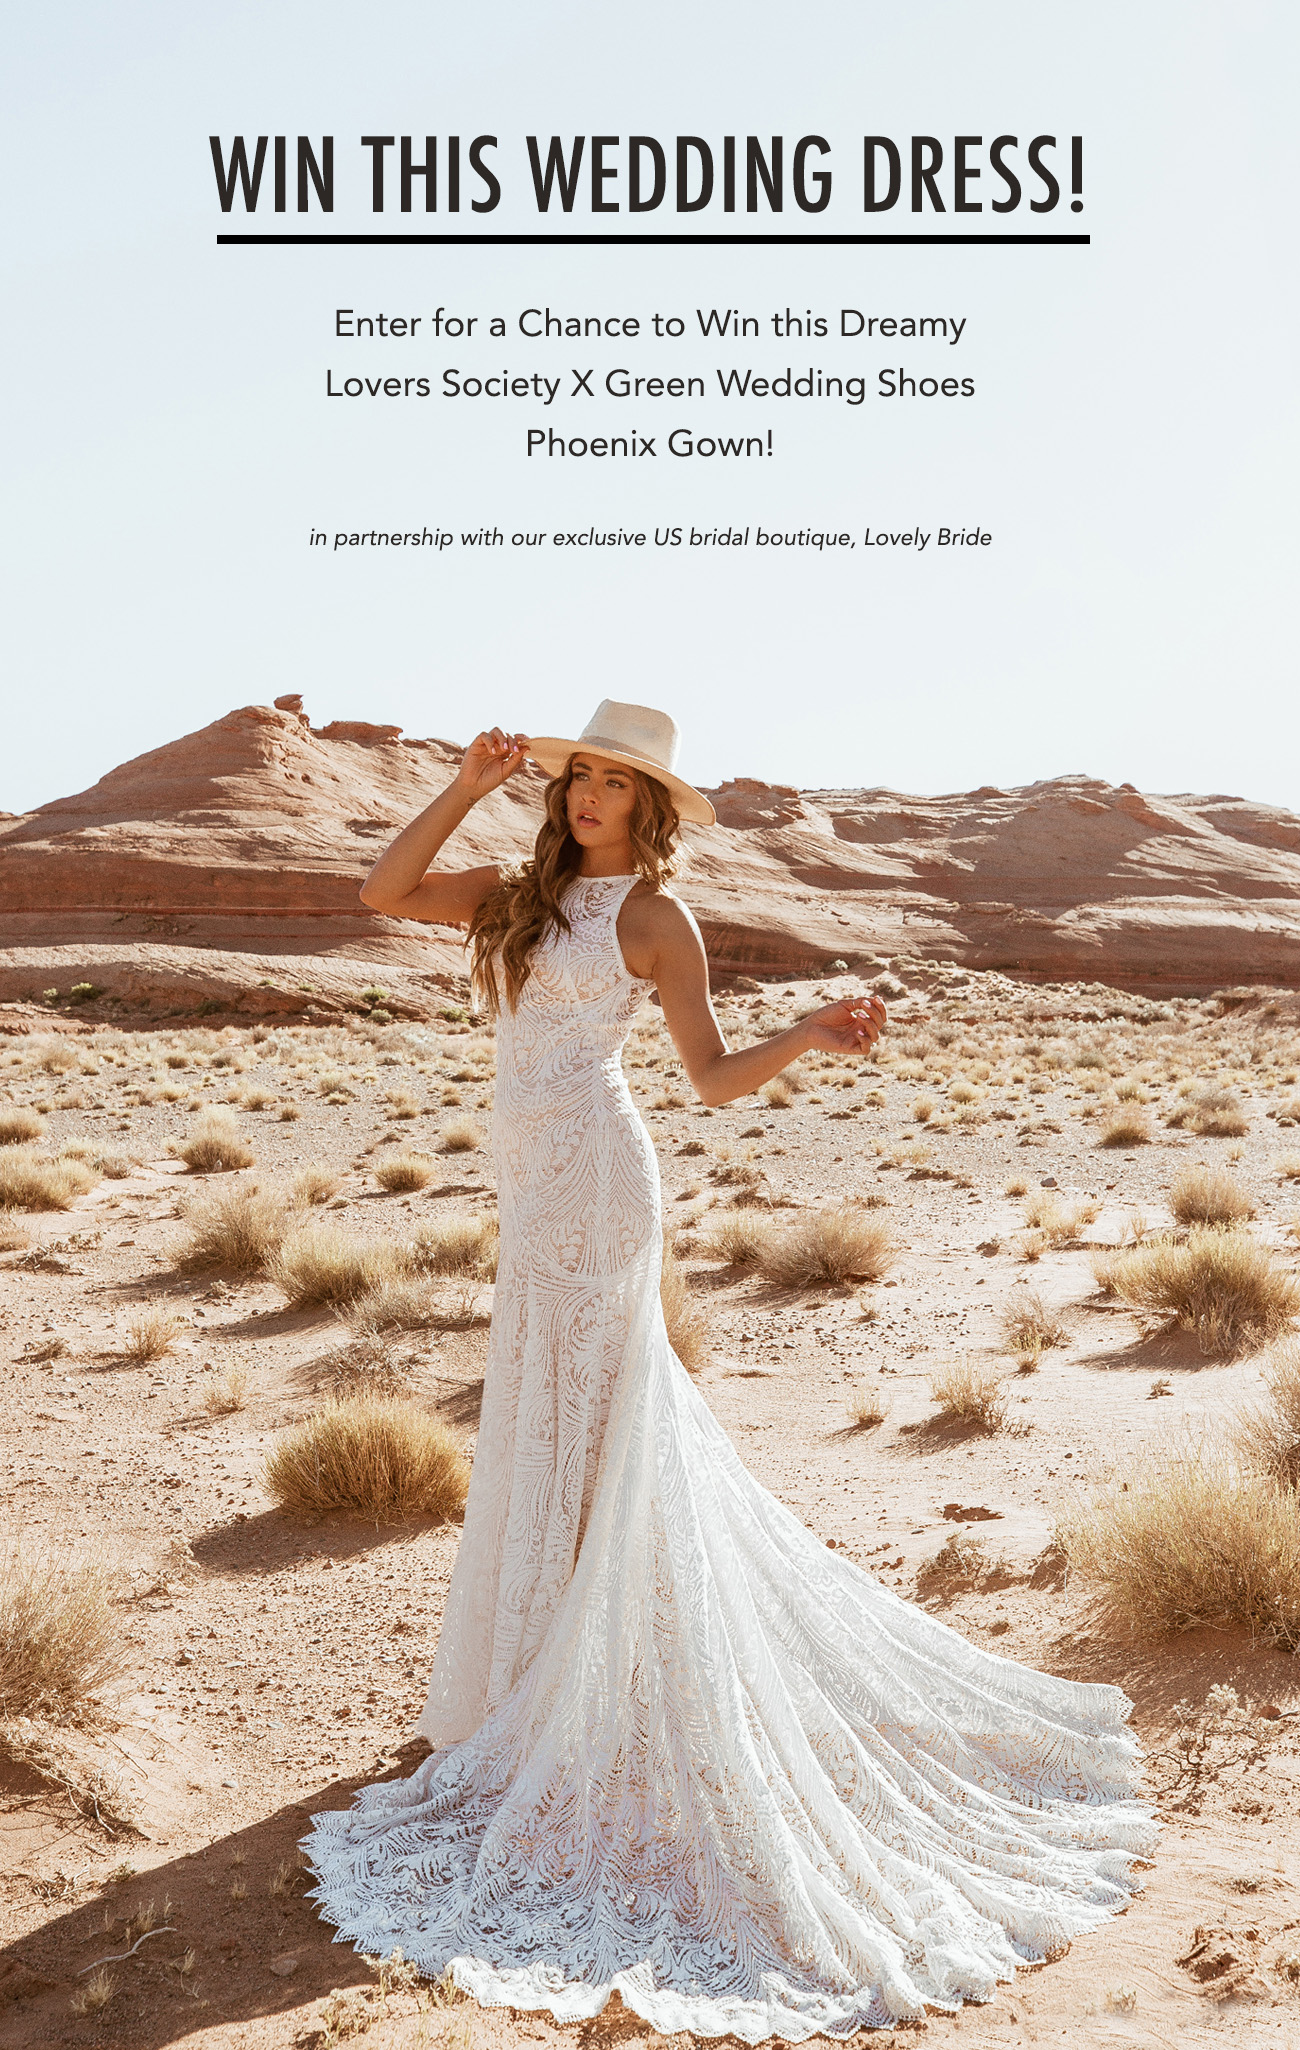 Win this wedding dress from Lovers Society x Green Wedding Shoes!